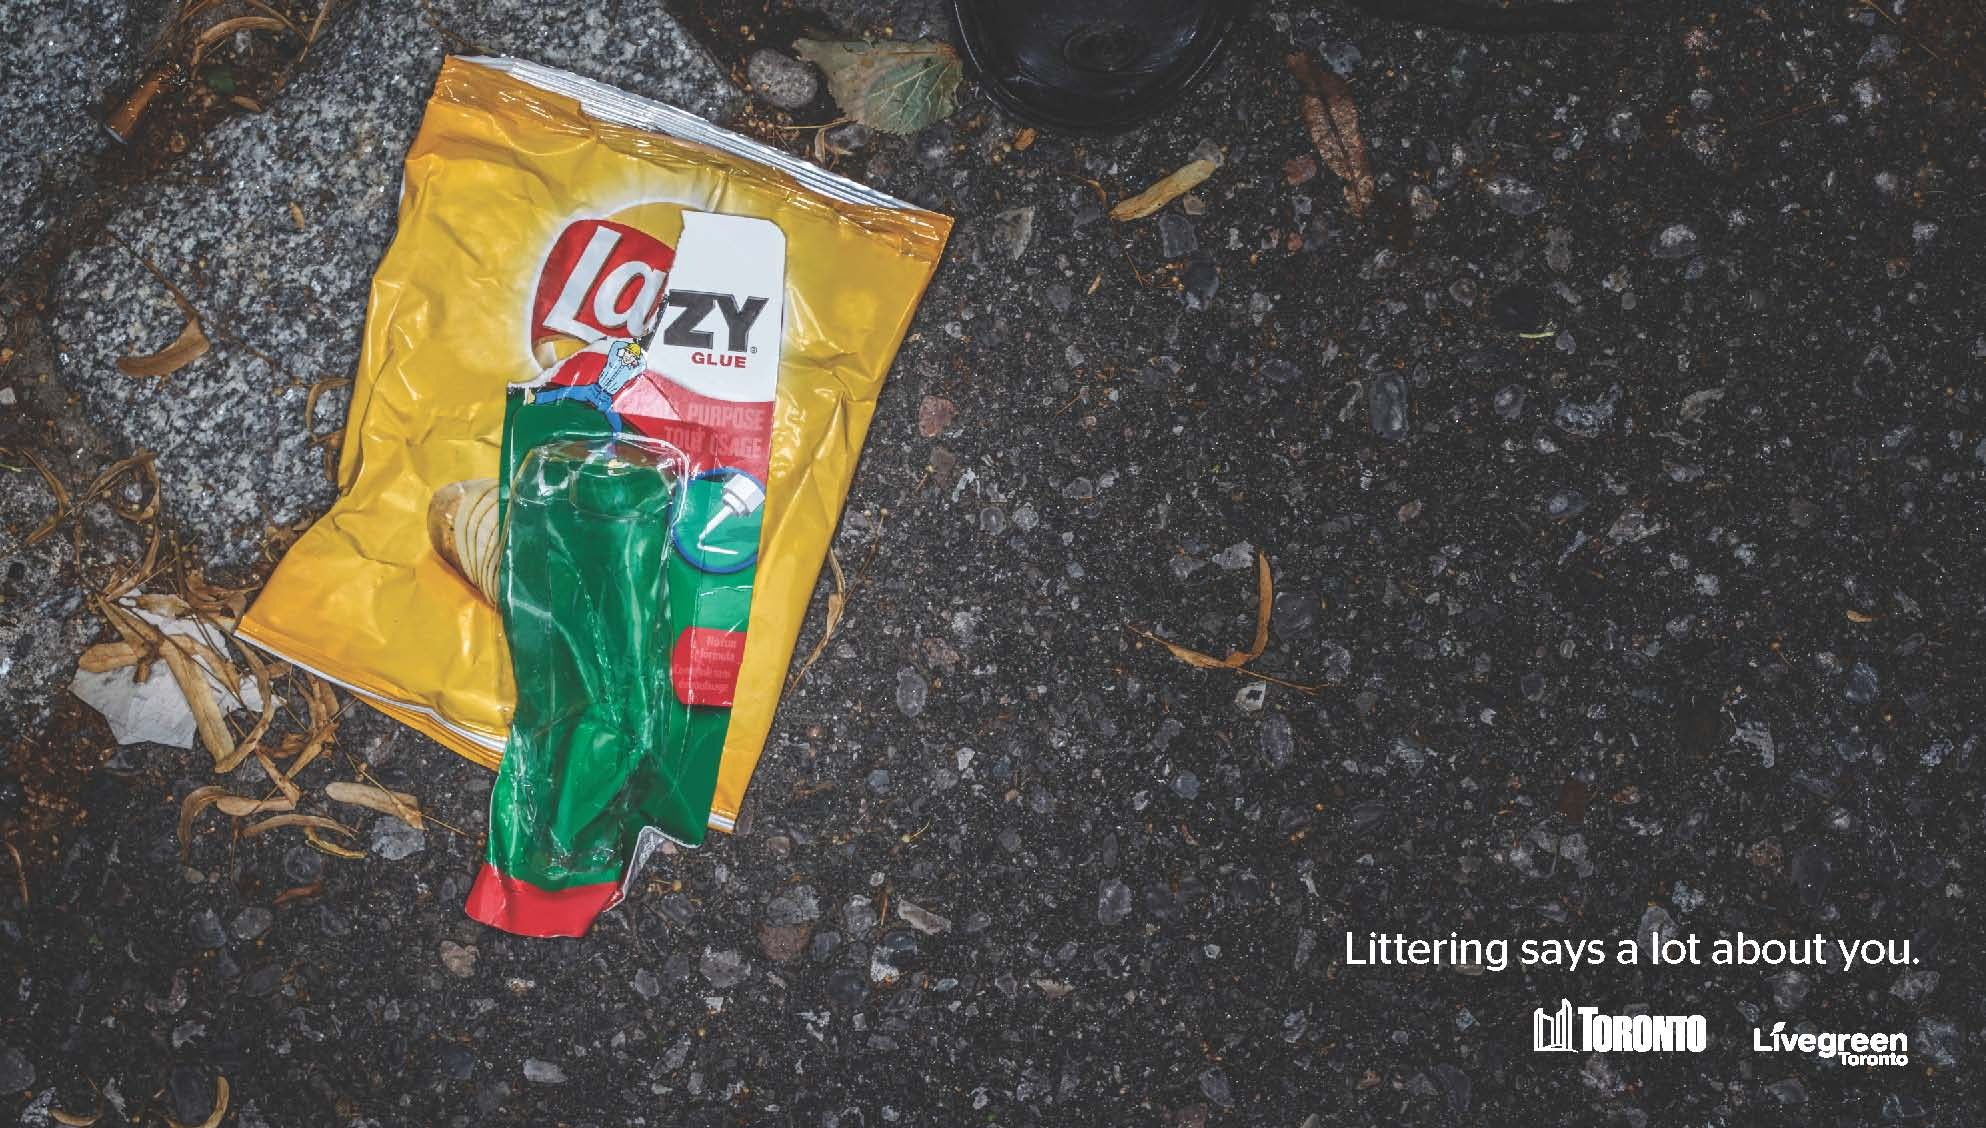 Littering Says a Lot About You (a Smart Ad Campaign from Toronto)